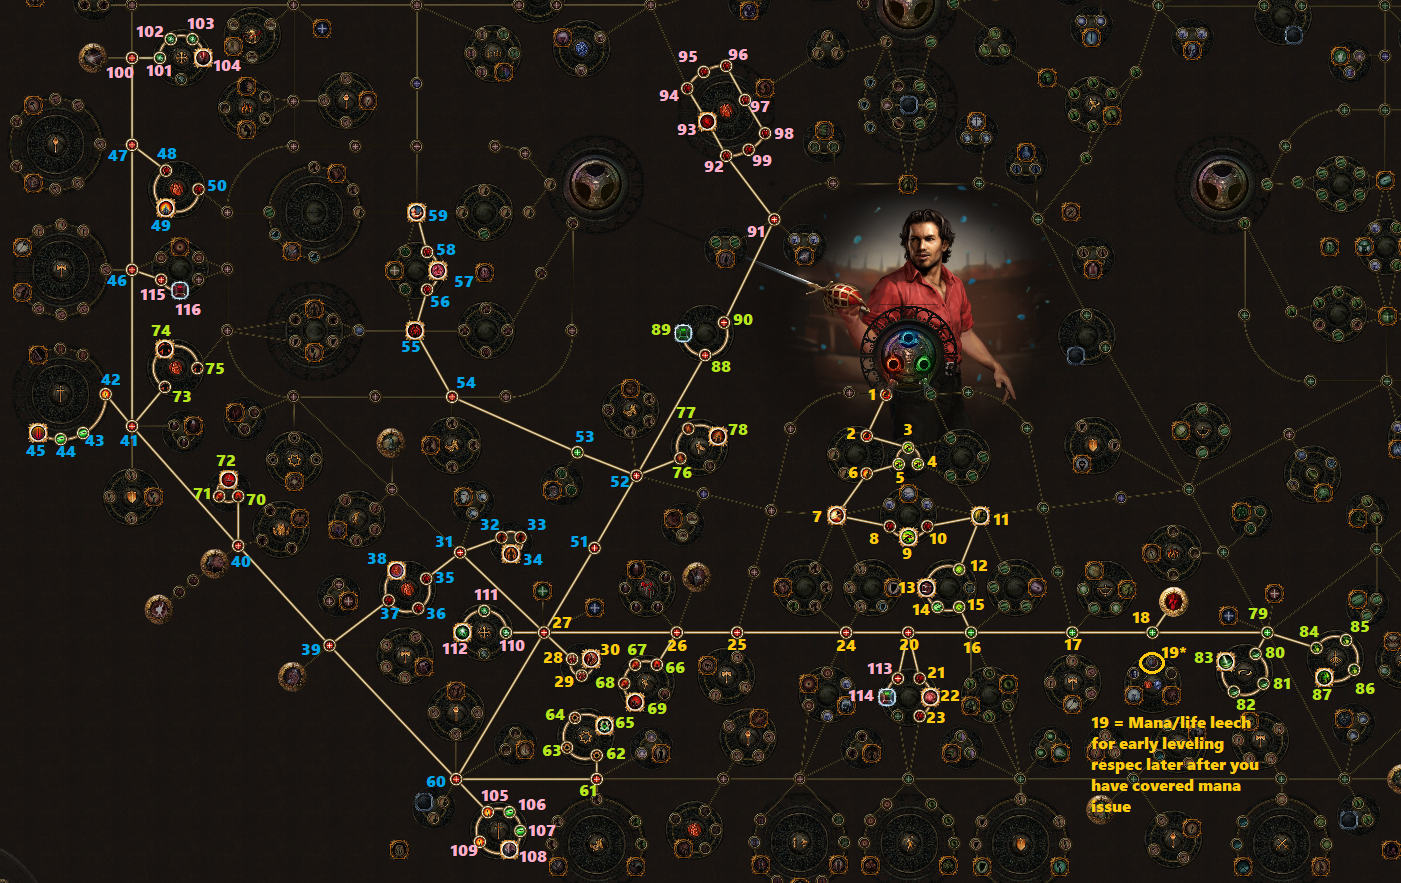 Duelist 3 9 Dual Wield Ahn S Might Cyclone Slayer Off Meta League Starter Endgame All Content Forum Path Of Exile